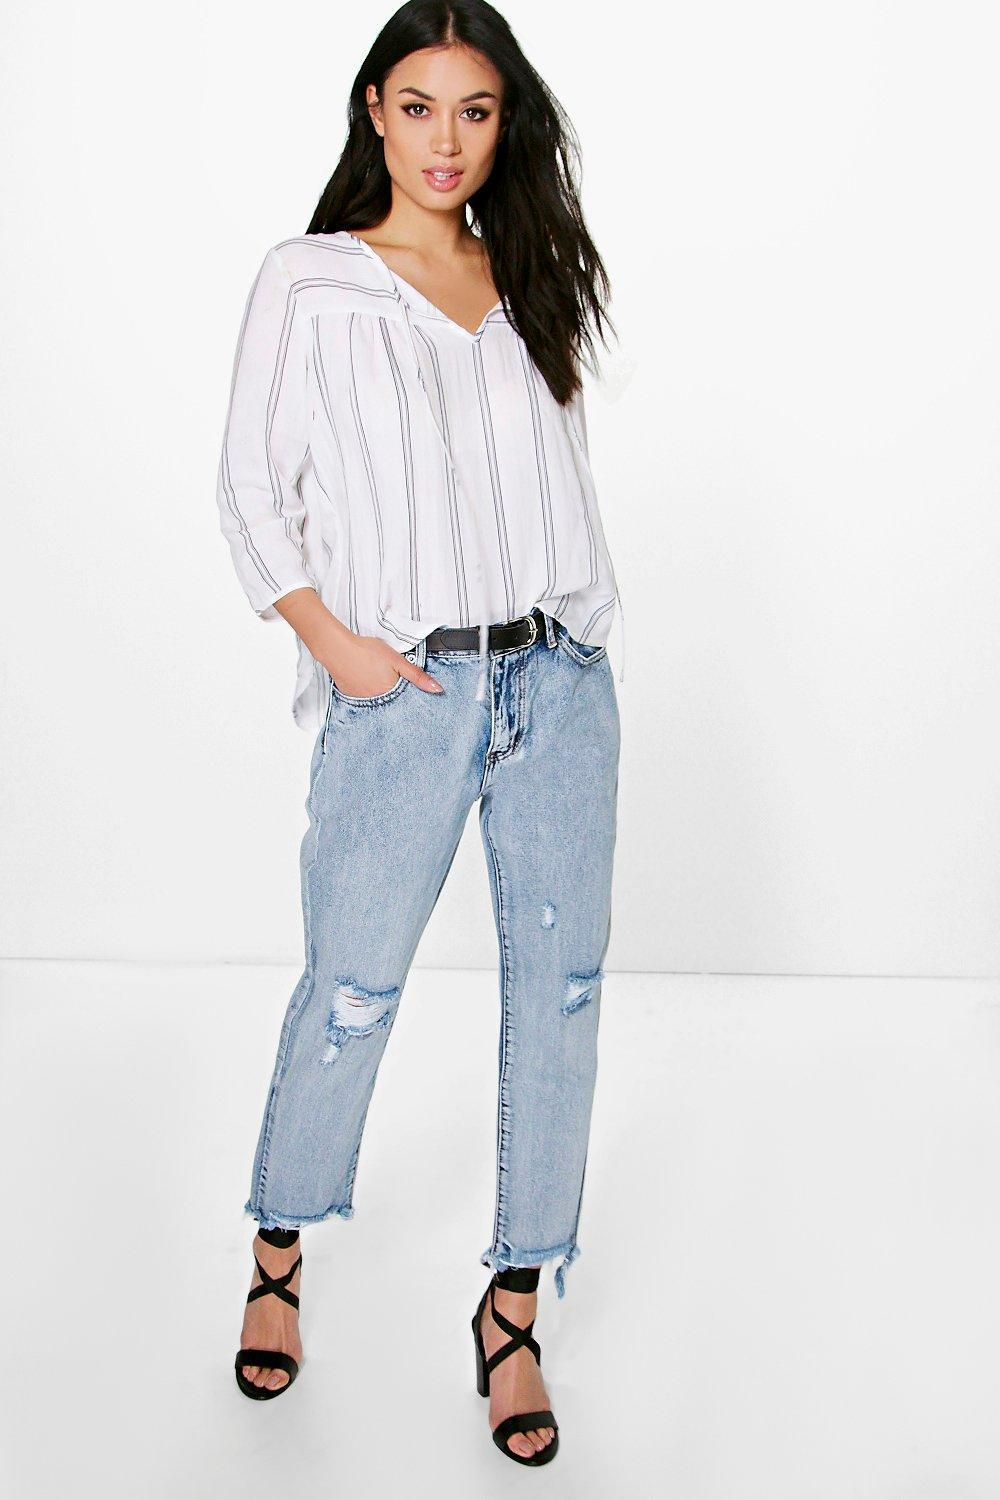 Fray Hem Distressed Mom Jeans Blue - style: boyfriend; pattern: plain; pocket detail: traditional 5 pocket; waist: mid/regular rise; predominant colour: pale blue; occasions: casual; length: ankle length; fibres: cotton - 100%; texture group: denim; pattern type: fabric; jeans detail: rips; season: s/s 2016; wardrobe: basic